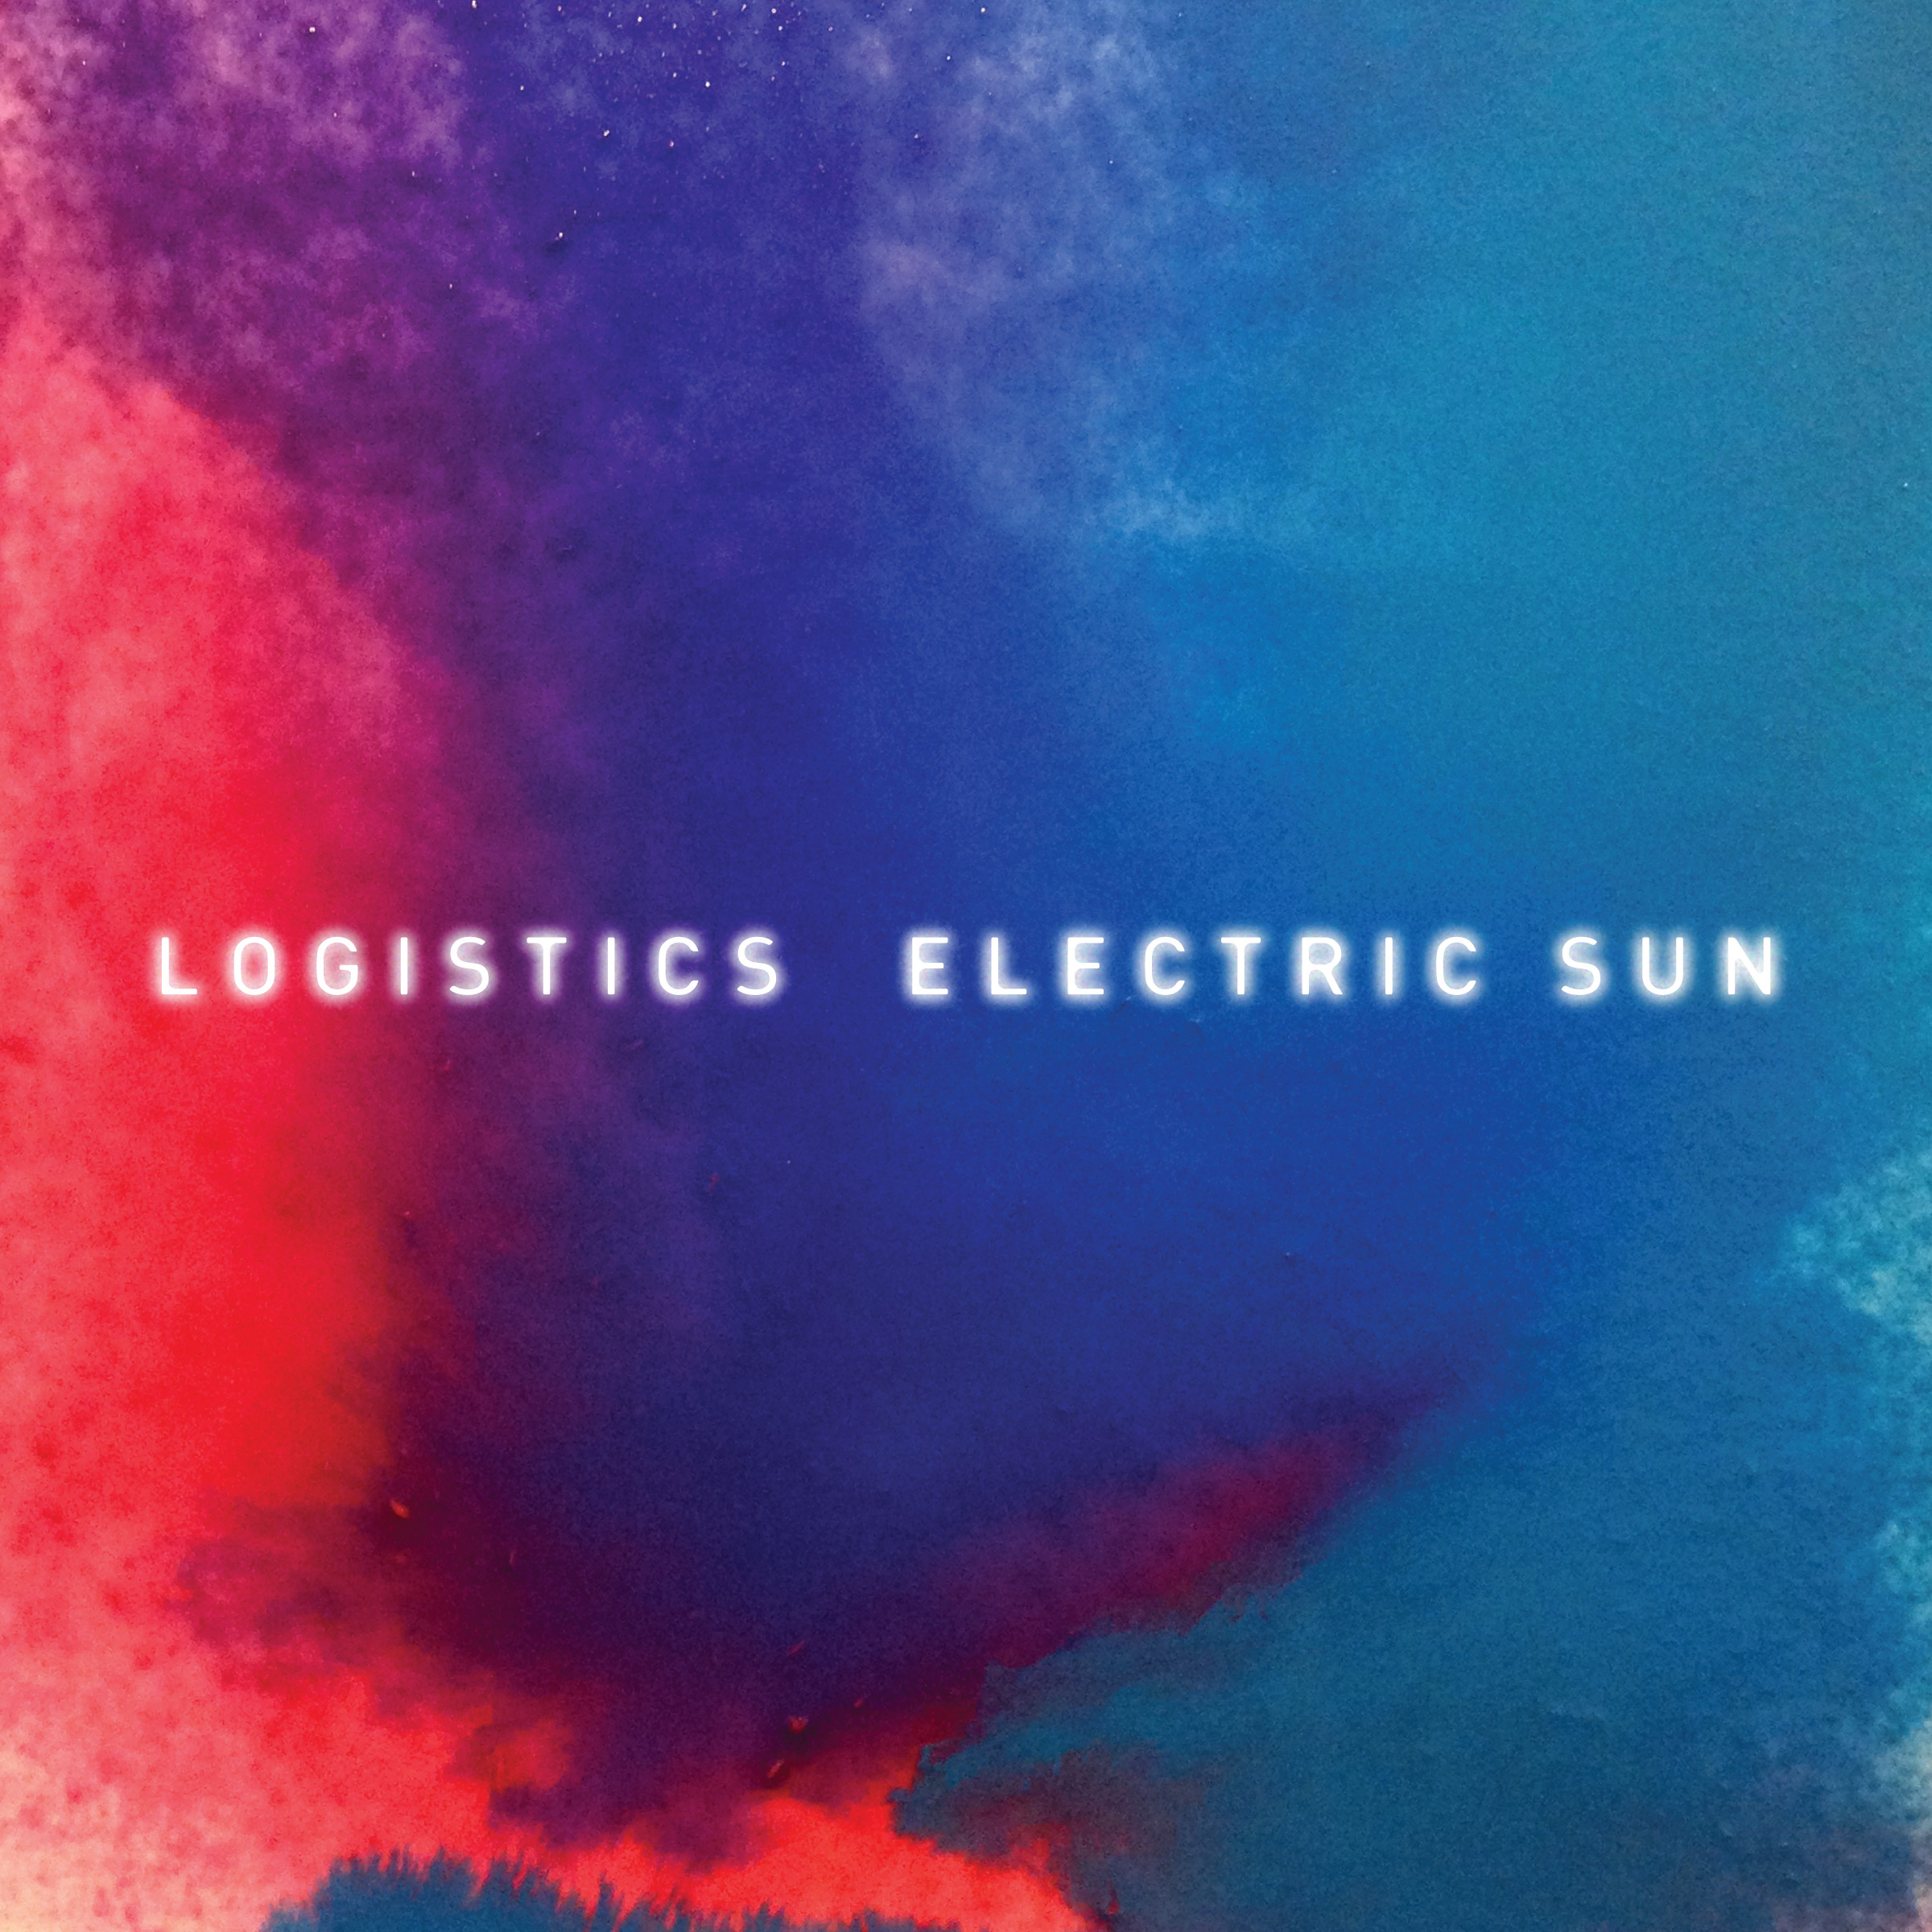 Logistics/ELECTRIC SUN DLP